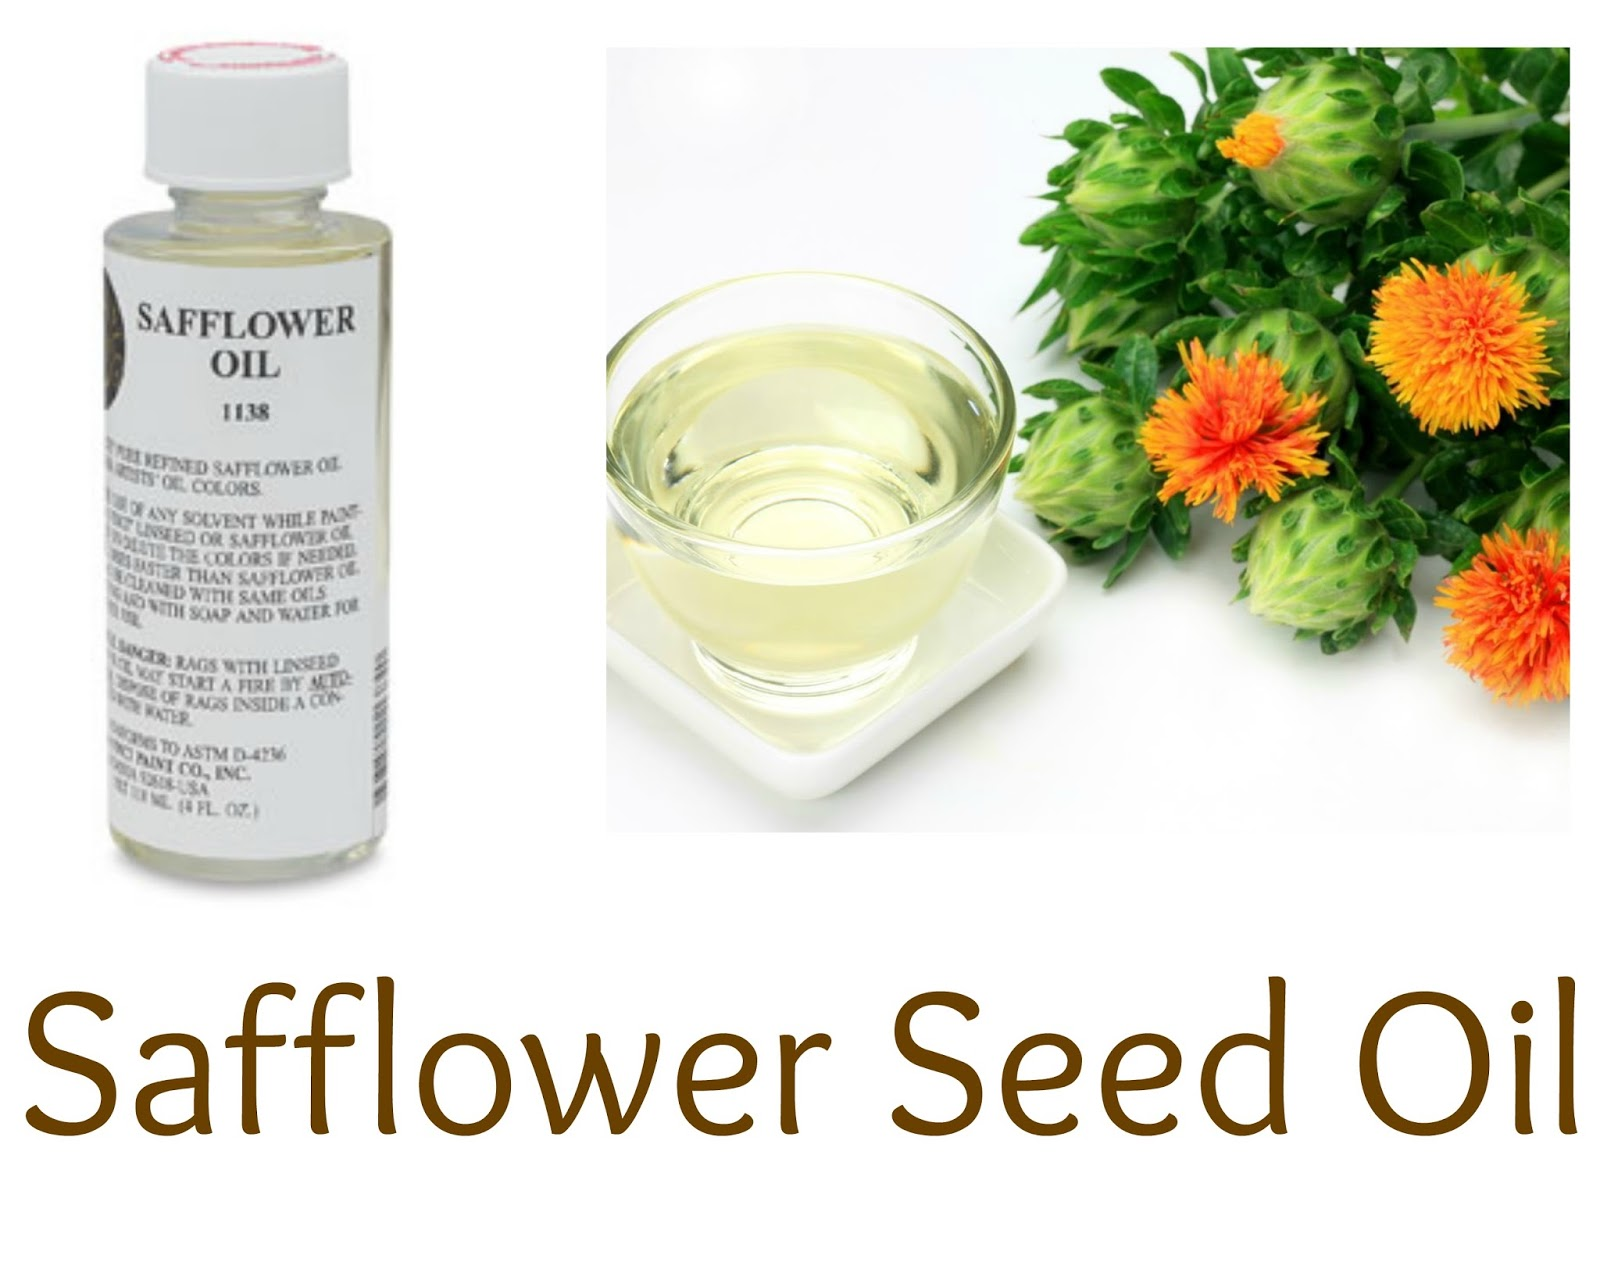 Click here to harness the power of Safflower Seed oil from Da Vinci Paints for low porosity hair